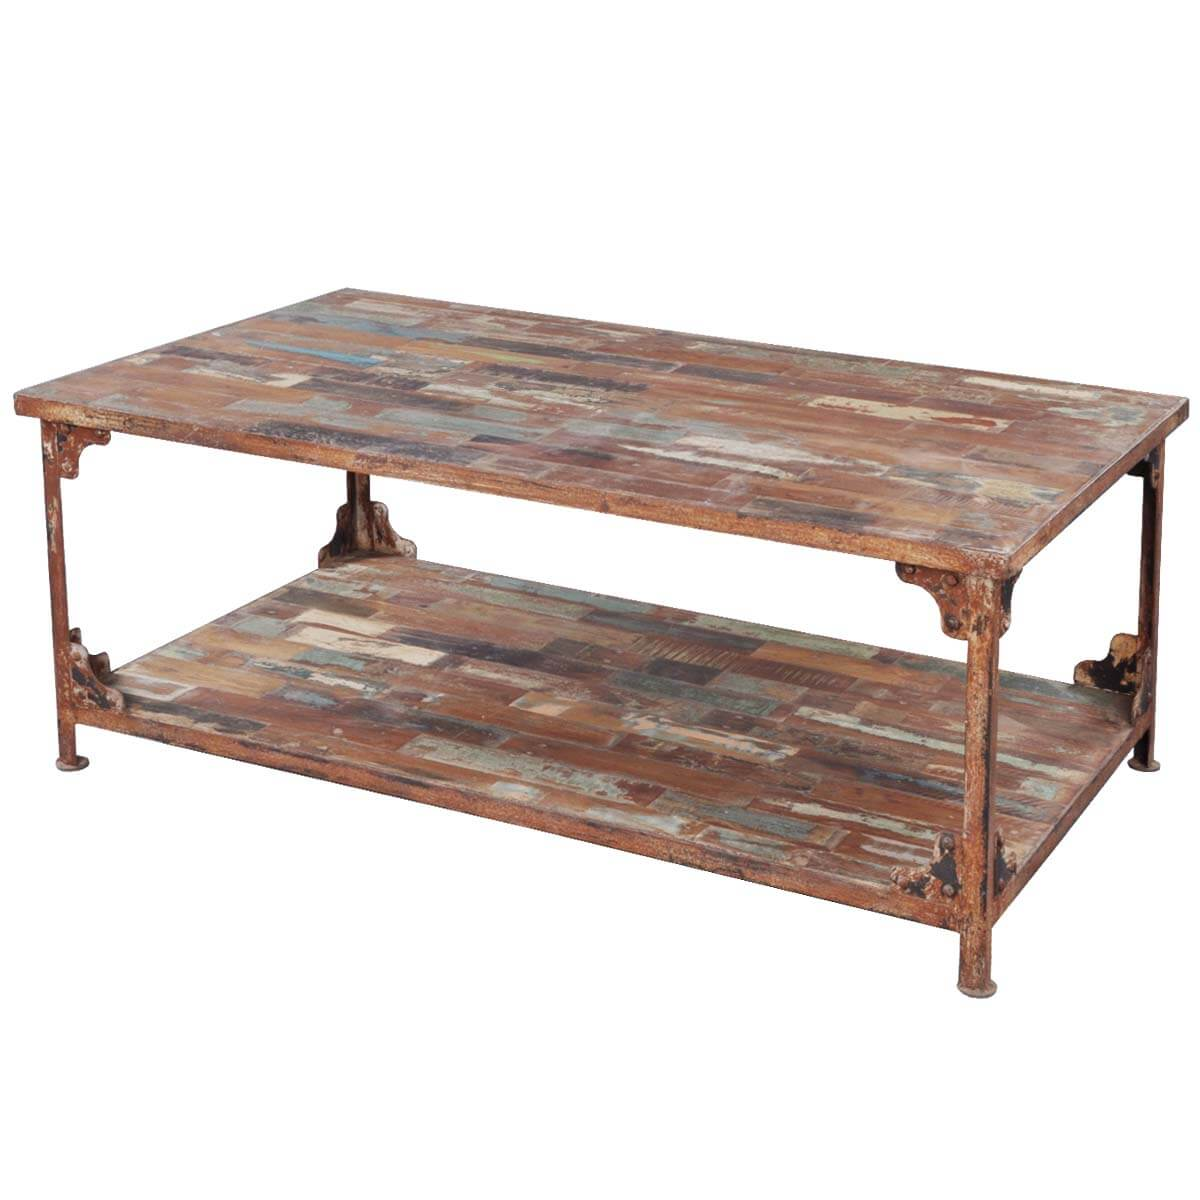 Distressed reclaimed wood industrial wrought iron rustic for Reclaimed coffee table